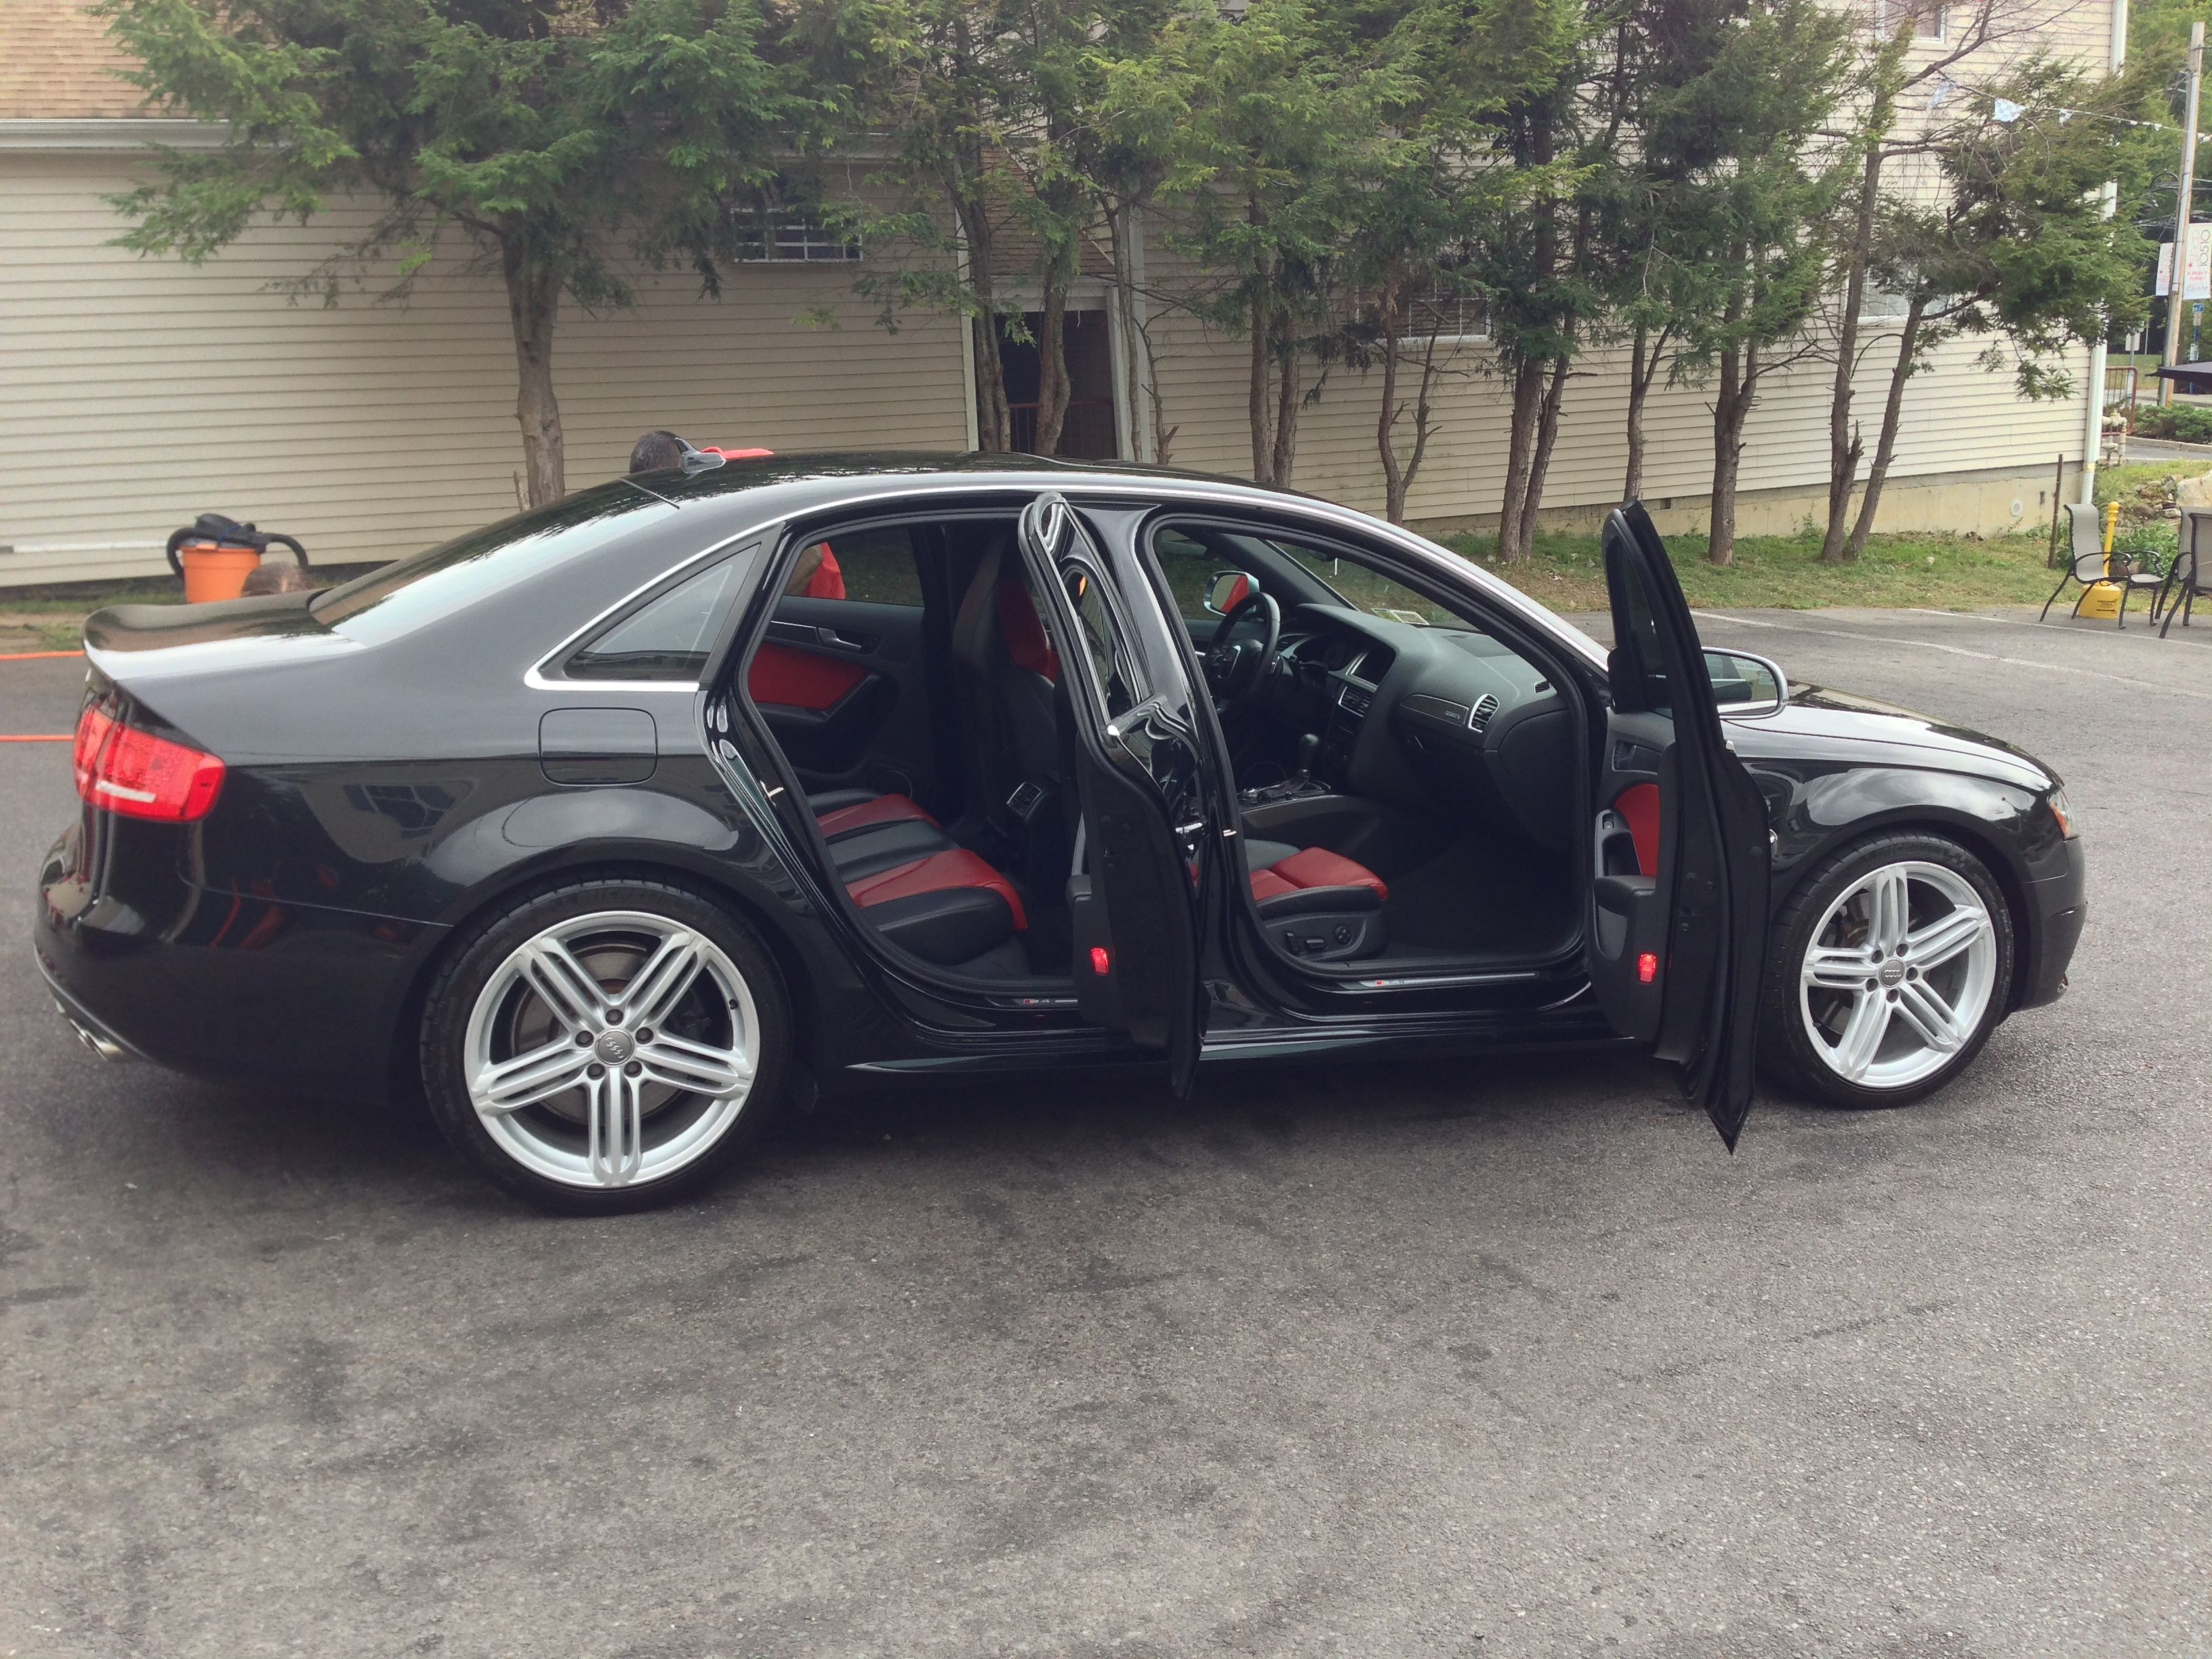 name page views first audiworld photo thread forums size official mki audi world mb attachment discussion westchester